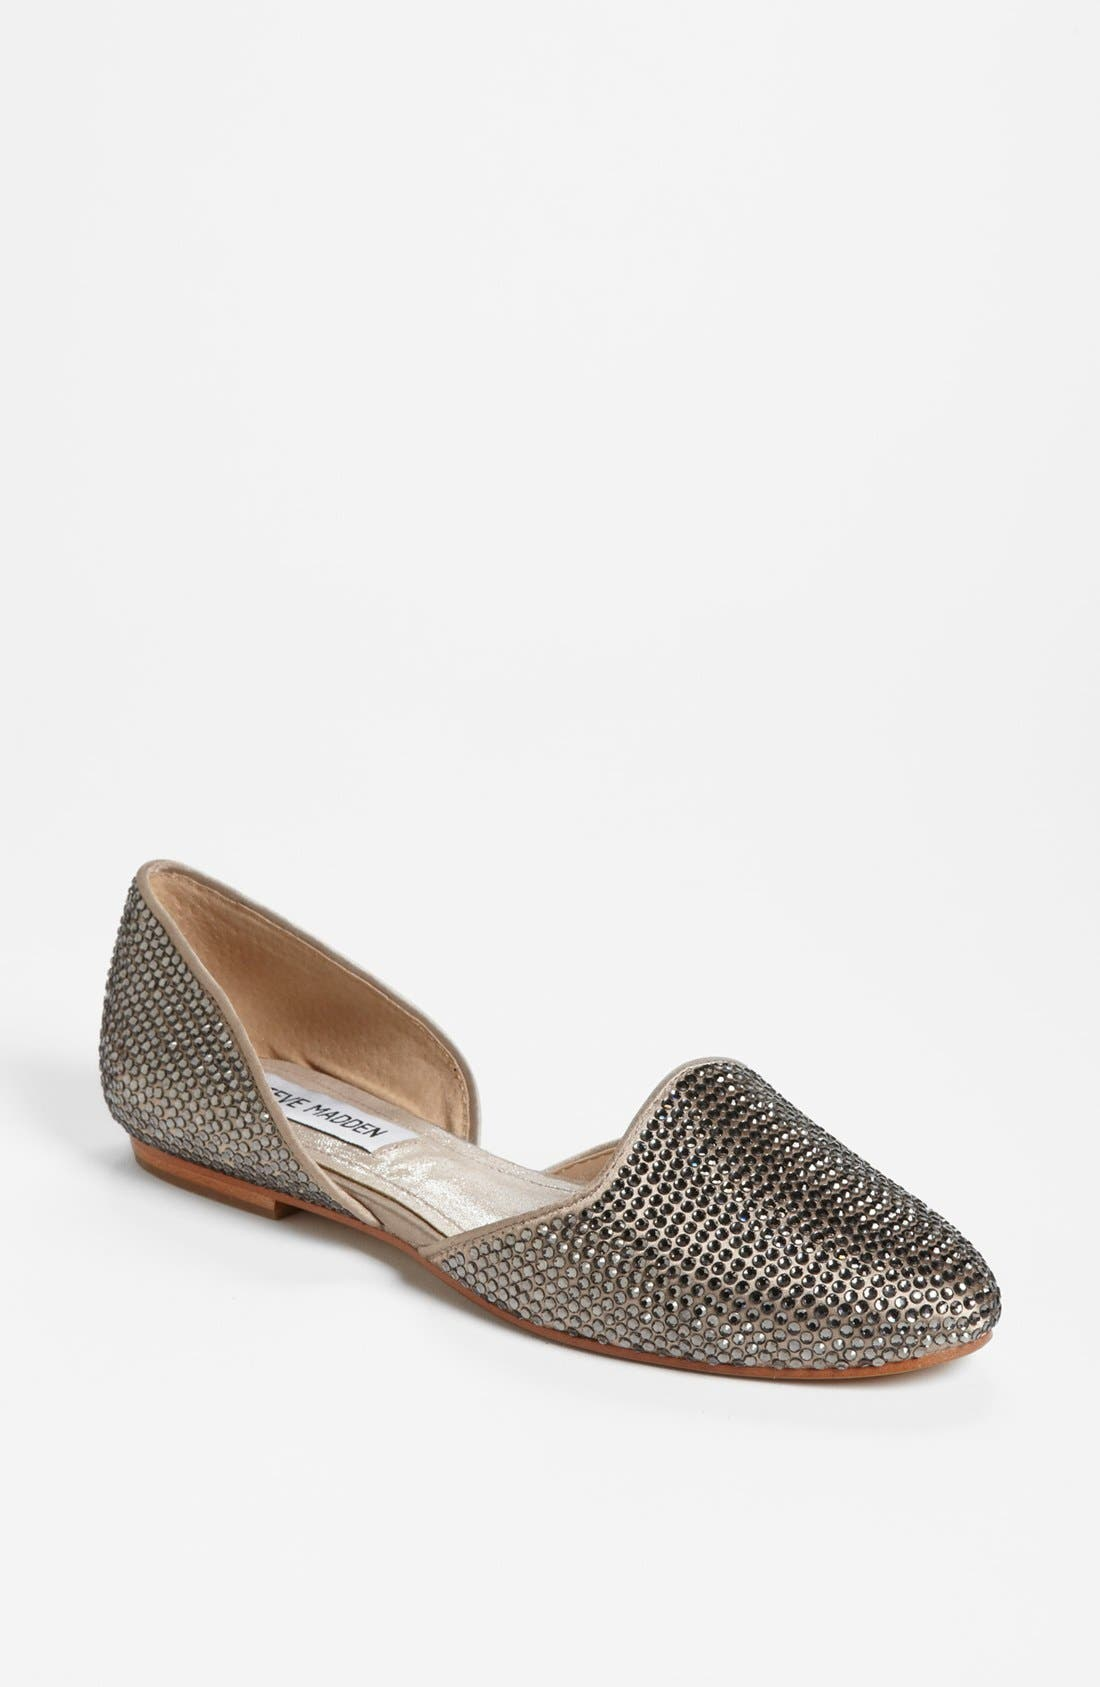 Alternate Image 1 Selected - Steve Madden 'Vamp-R' Flat